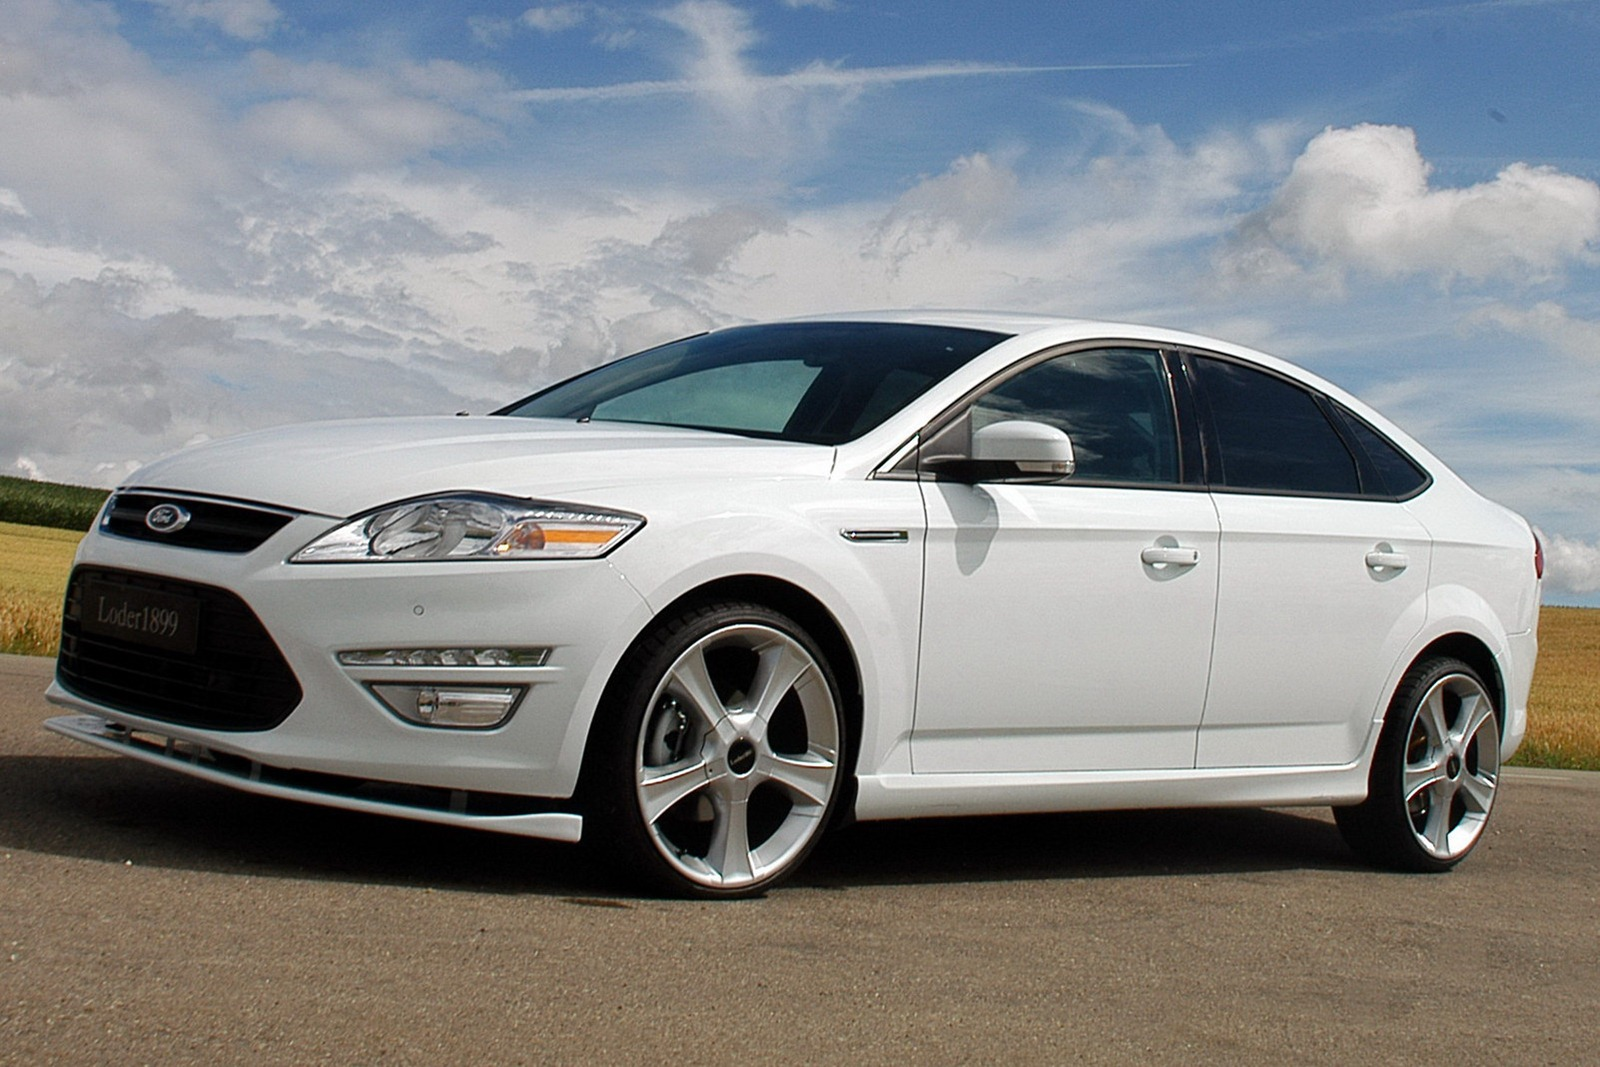 3DTuning of Ford Mondeo Sedan 2011 3DTuning.com - unique on-line